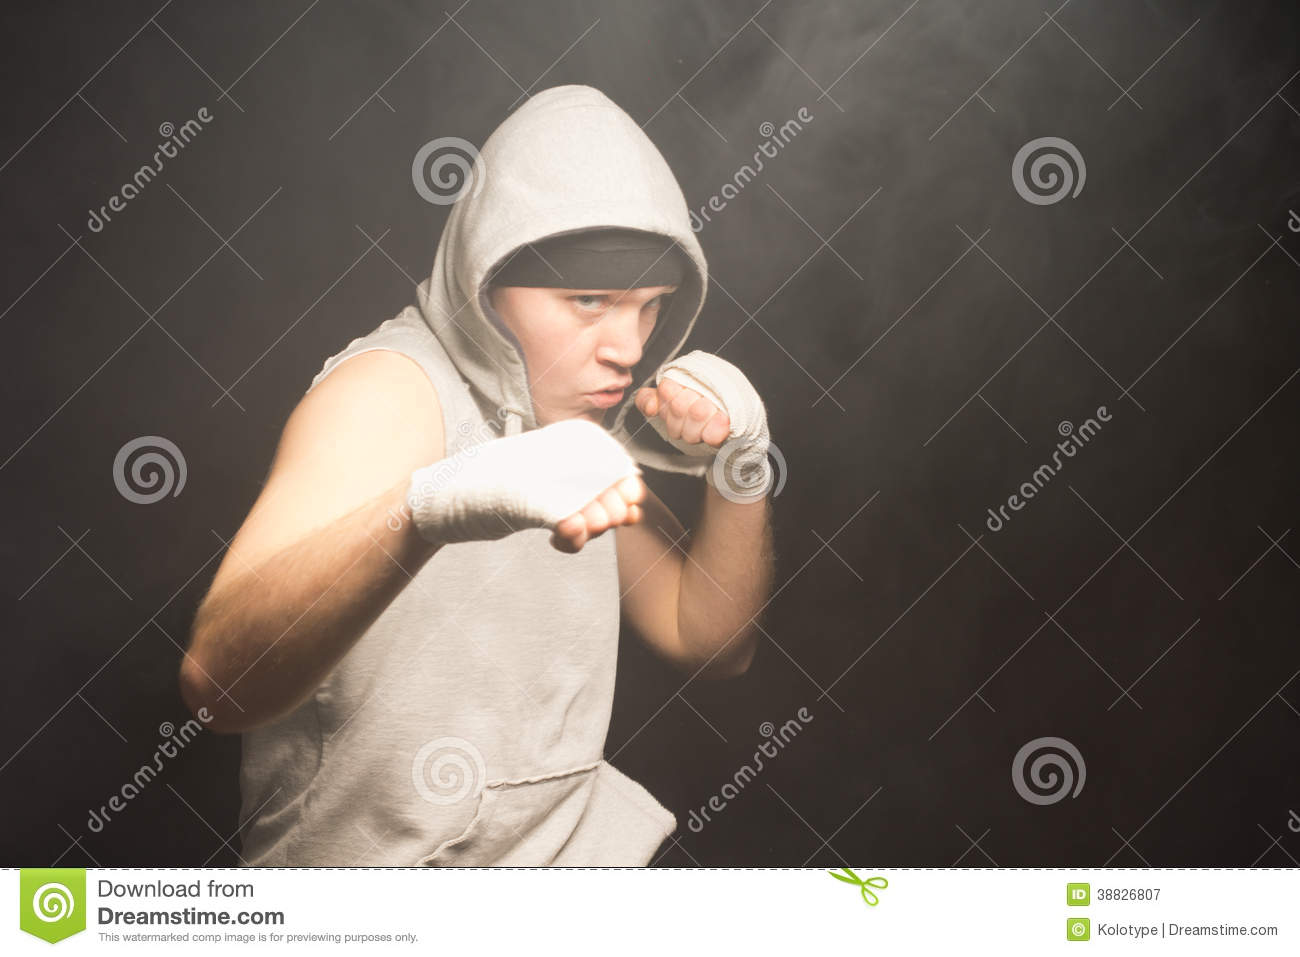 Pugnacious young boxer in a fight